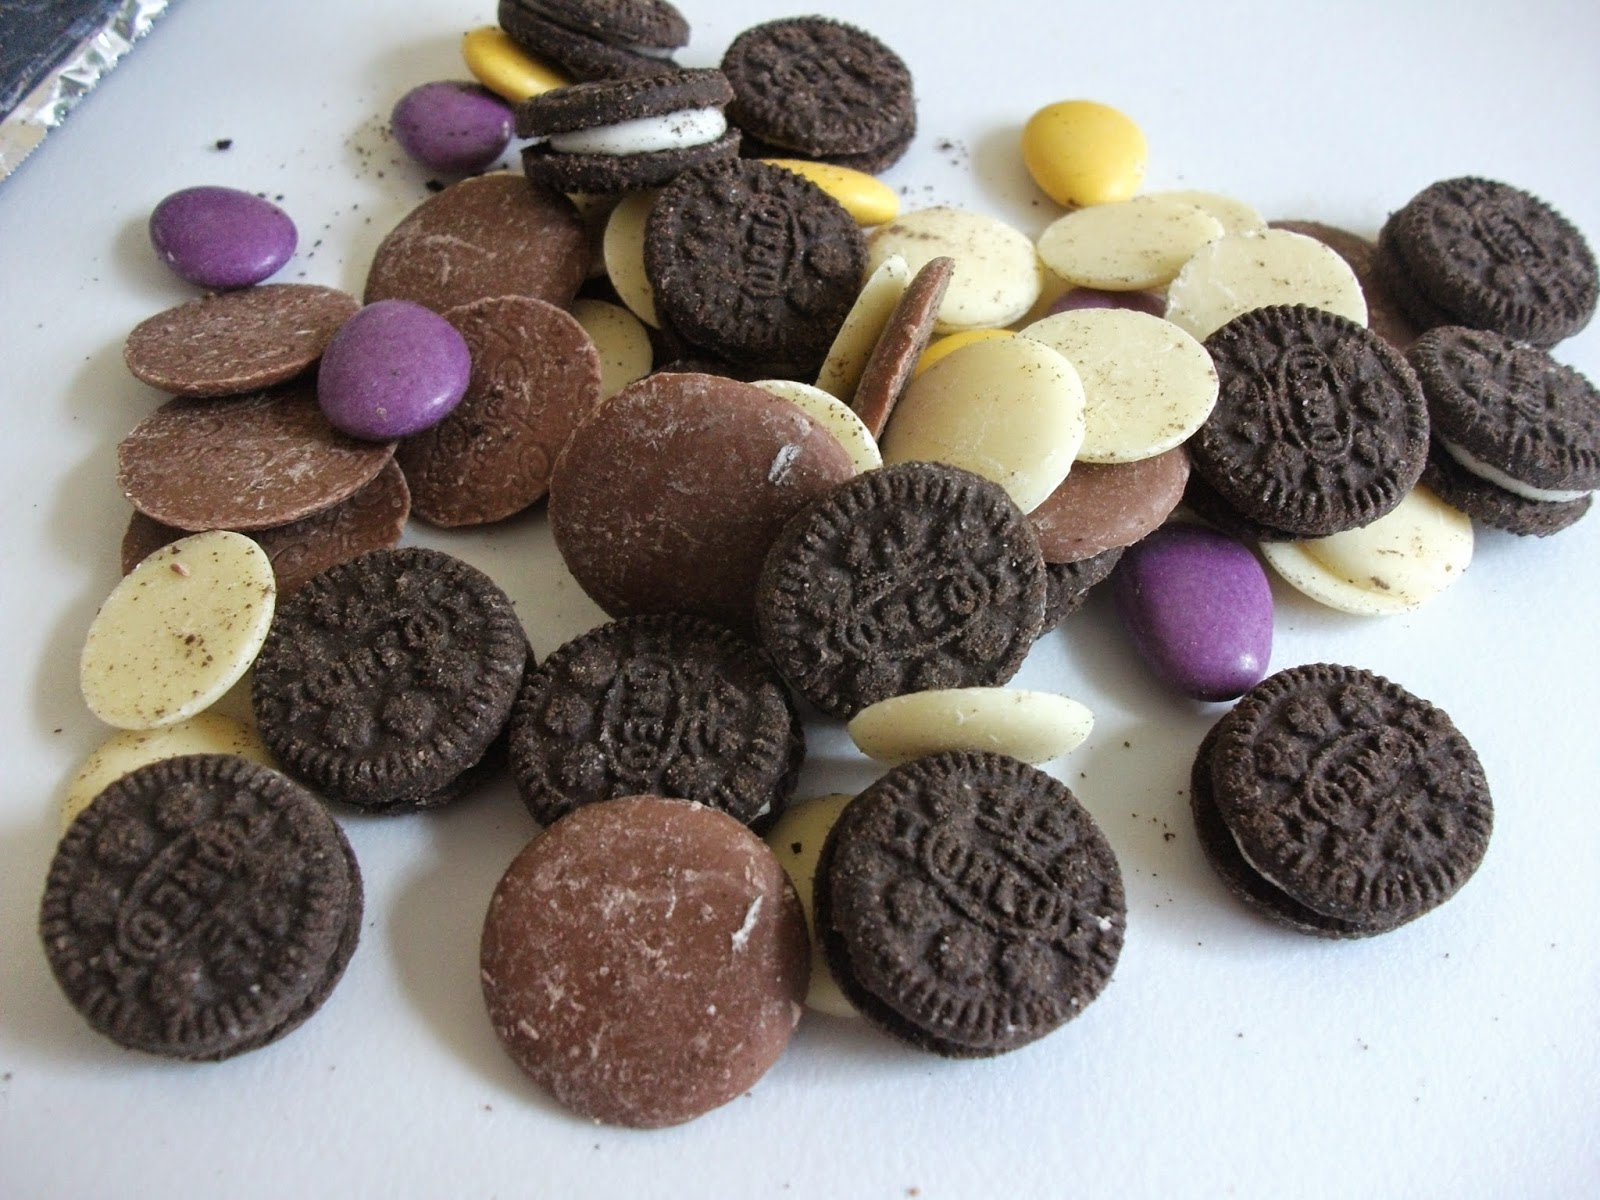 cadbury dairy milk marvellous mix-ups oreo